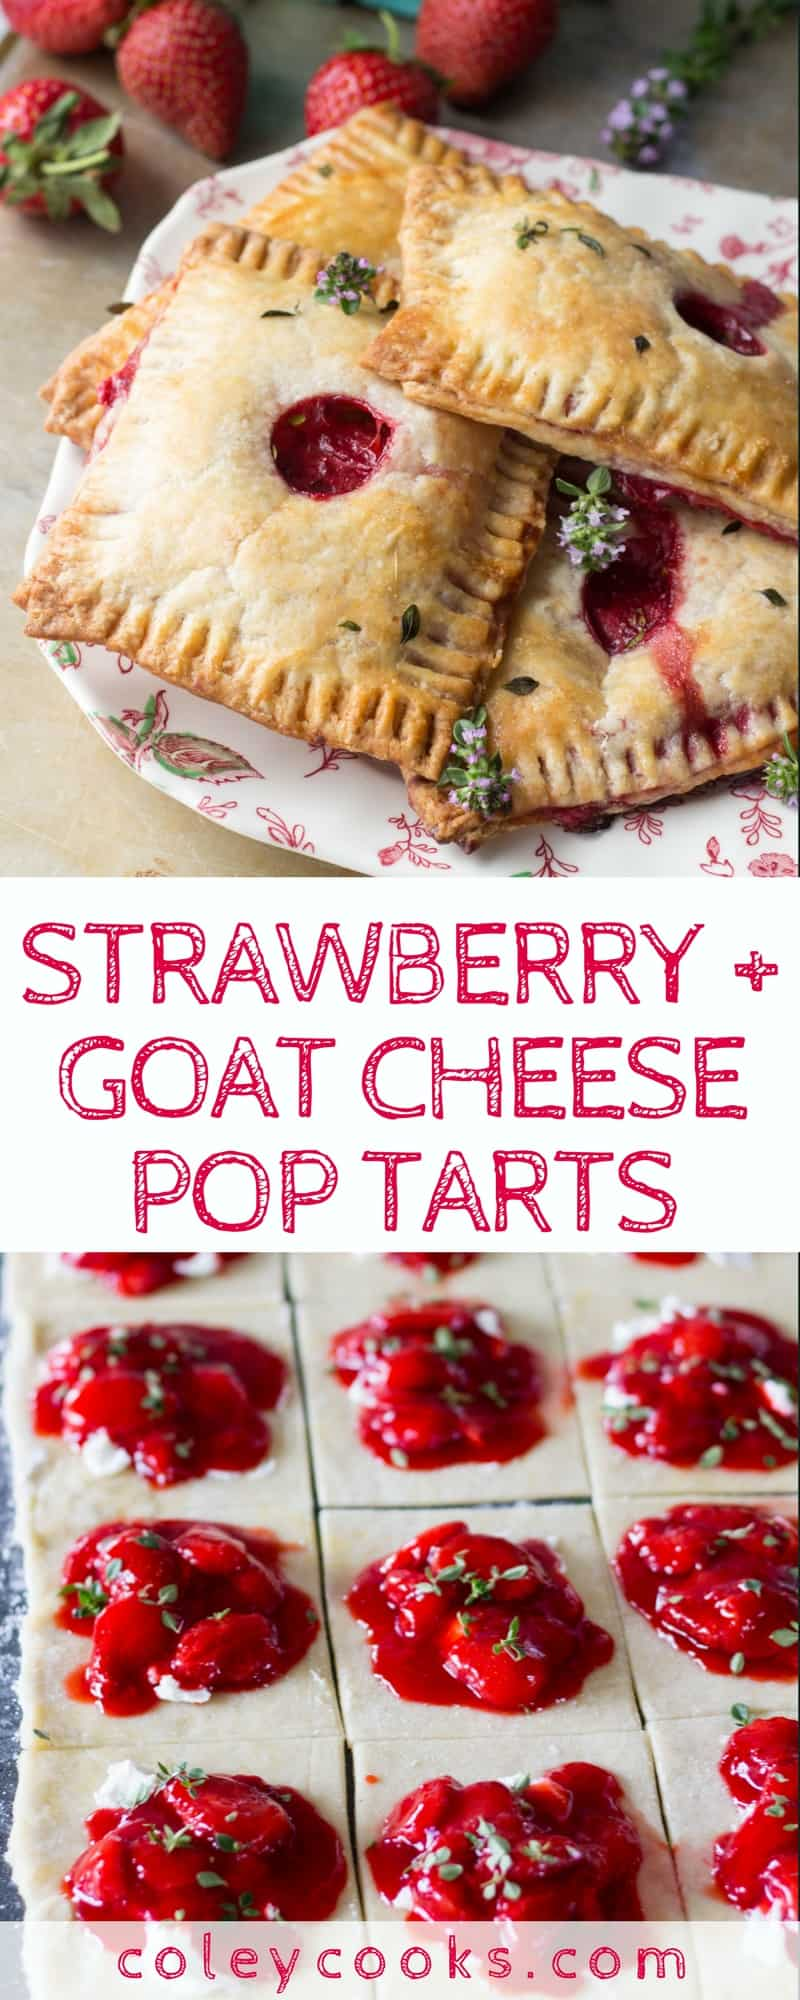 STRAWBERRY + GOAT CHEESE POP TARTS | This sweet and savory combination of strawberries and goat cheese wrapped in a flaky pastry makes an amazing breakfast or brunch treat! | ColeyCooks.com